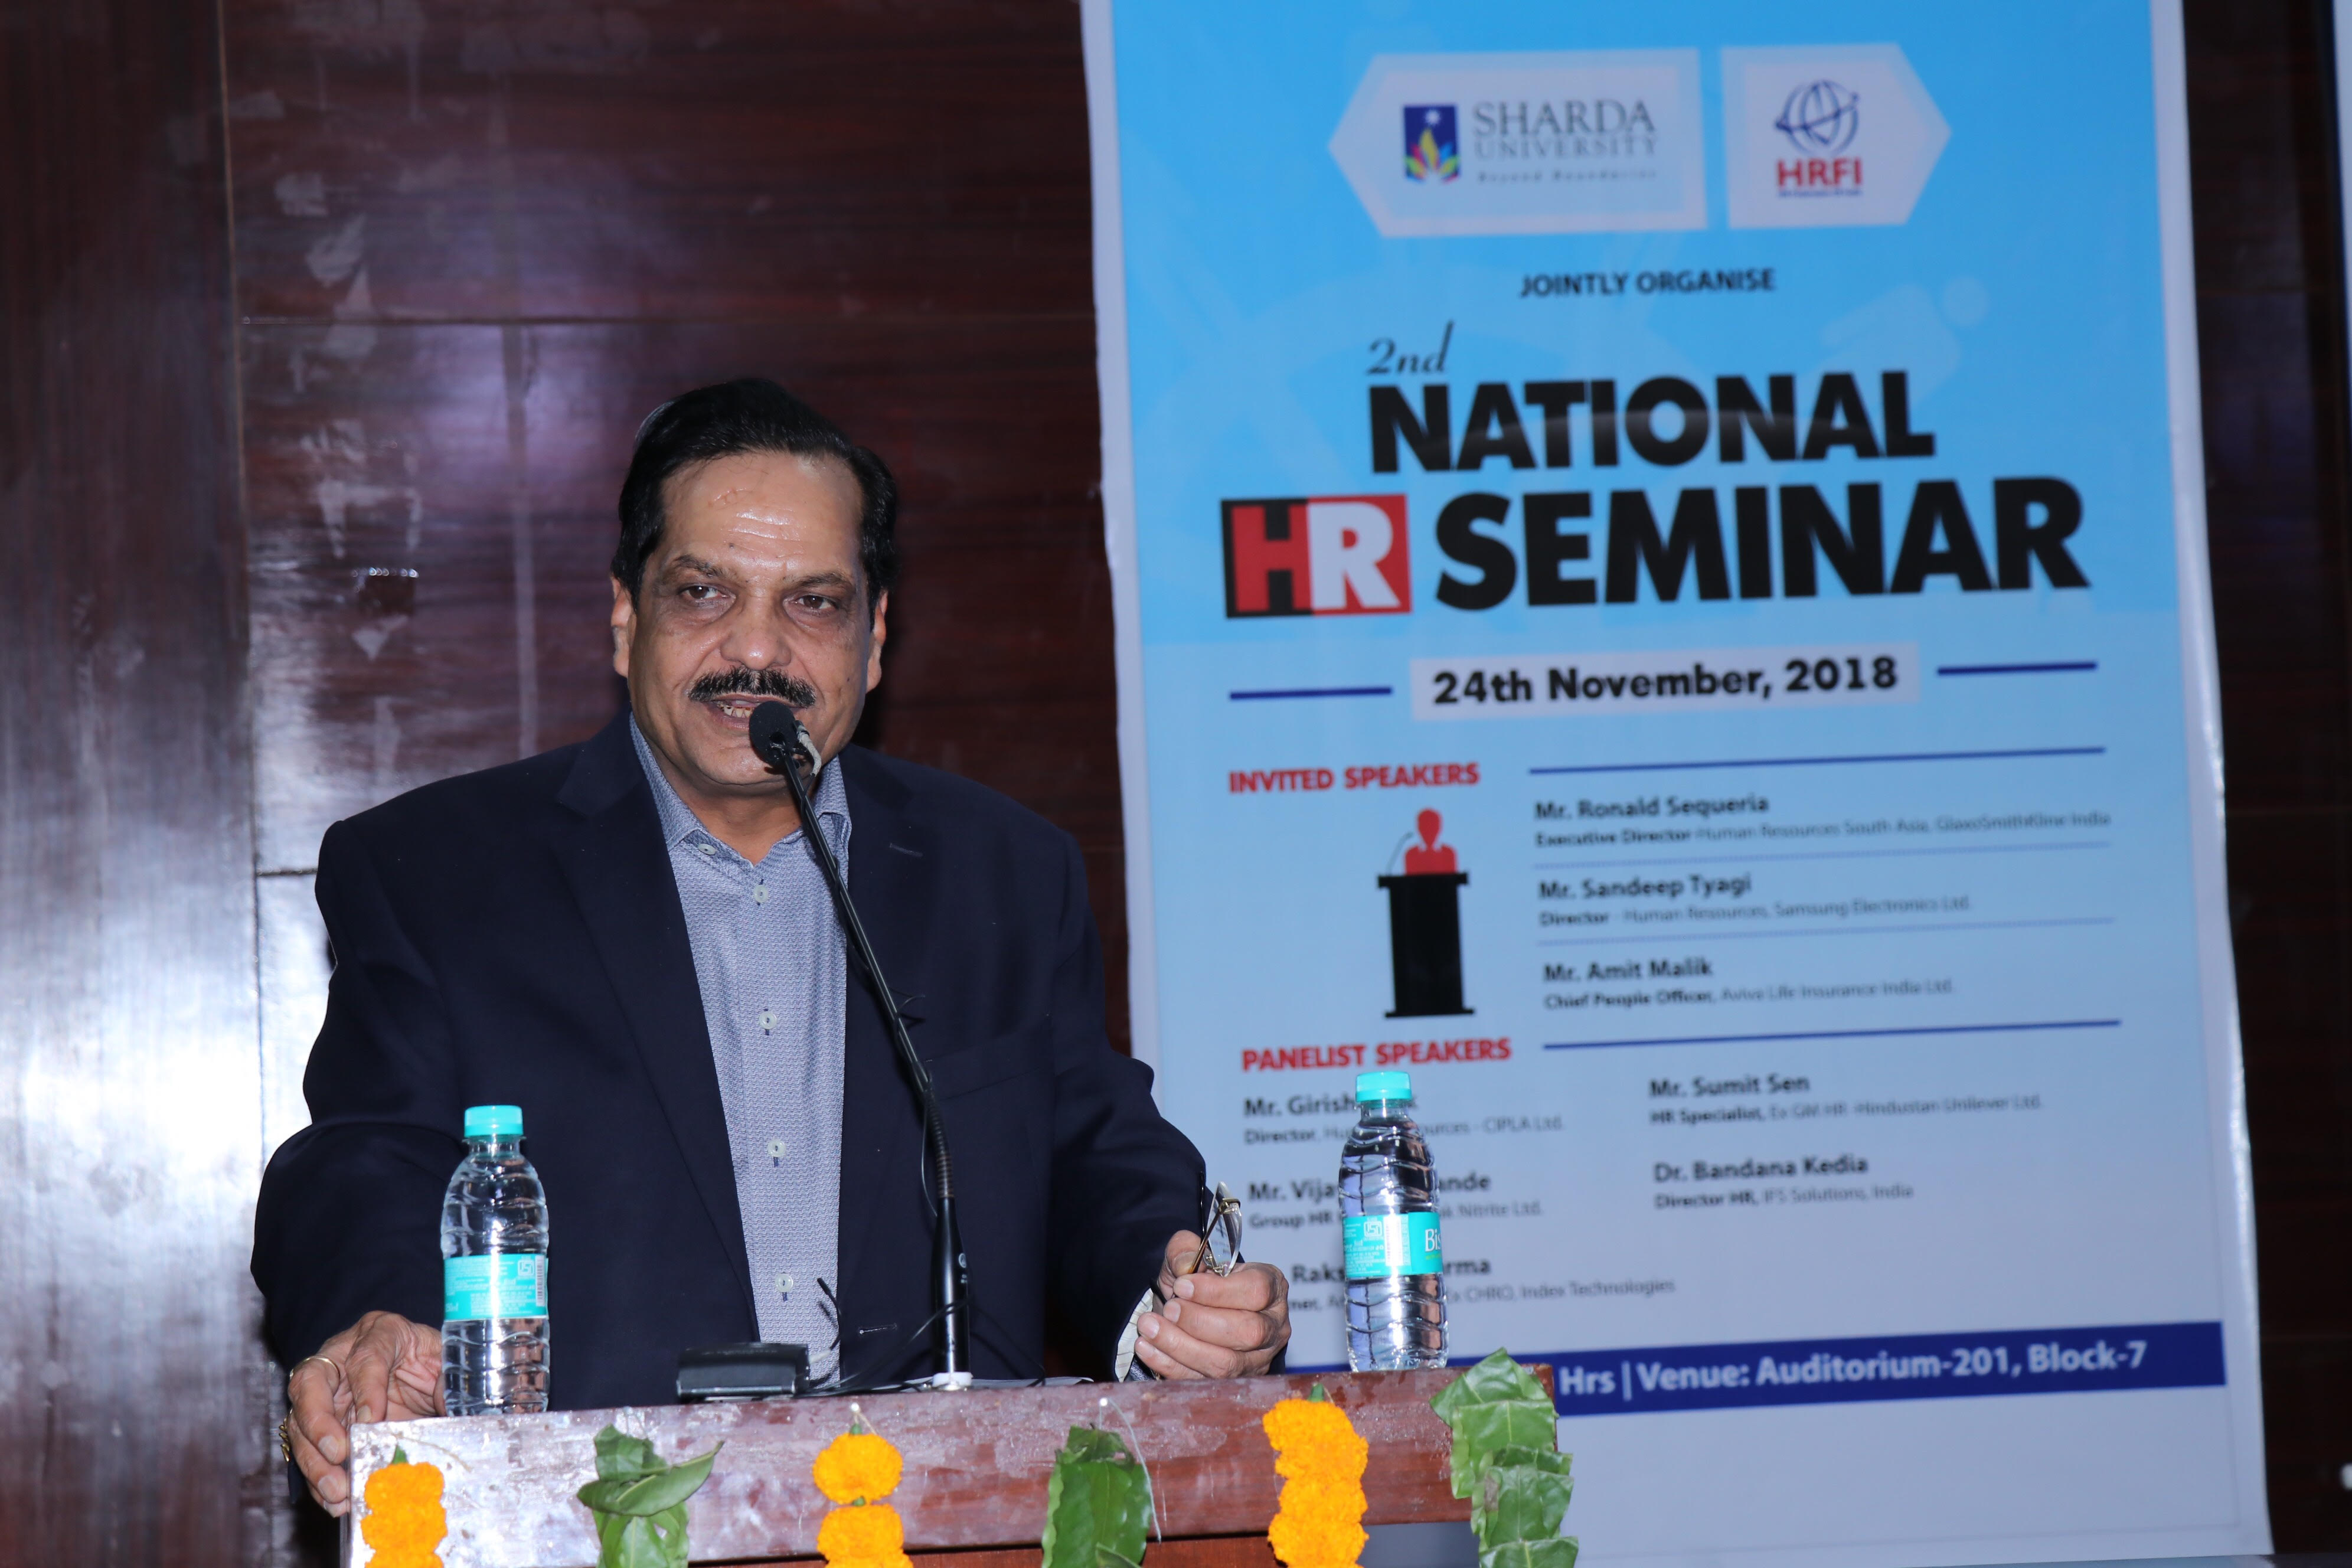 Mr. P.K. Gupta, Chancellor- Sharda University addressing the audience at the National HR Conclave